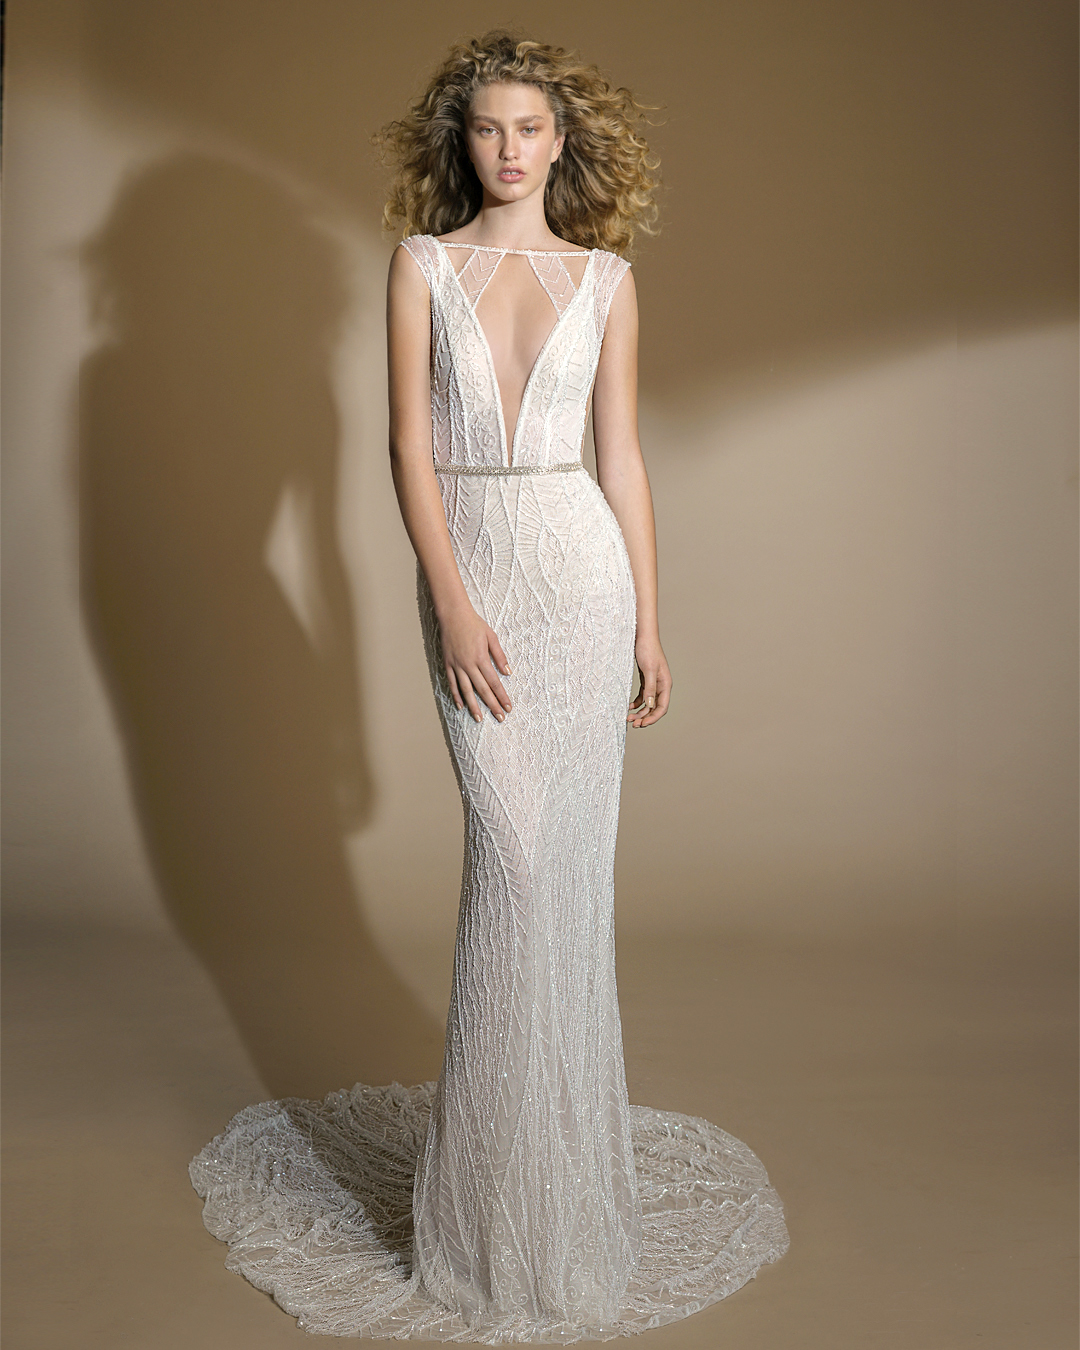 galia lahav gala wedding dress spring 2019 v-neck mermaid